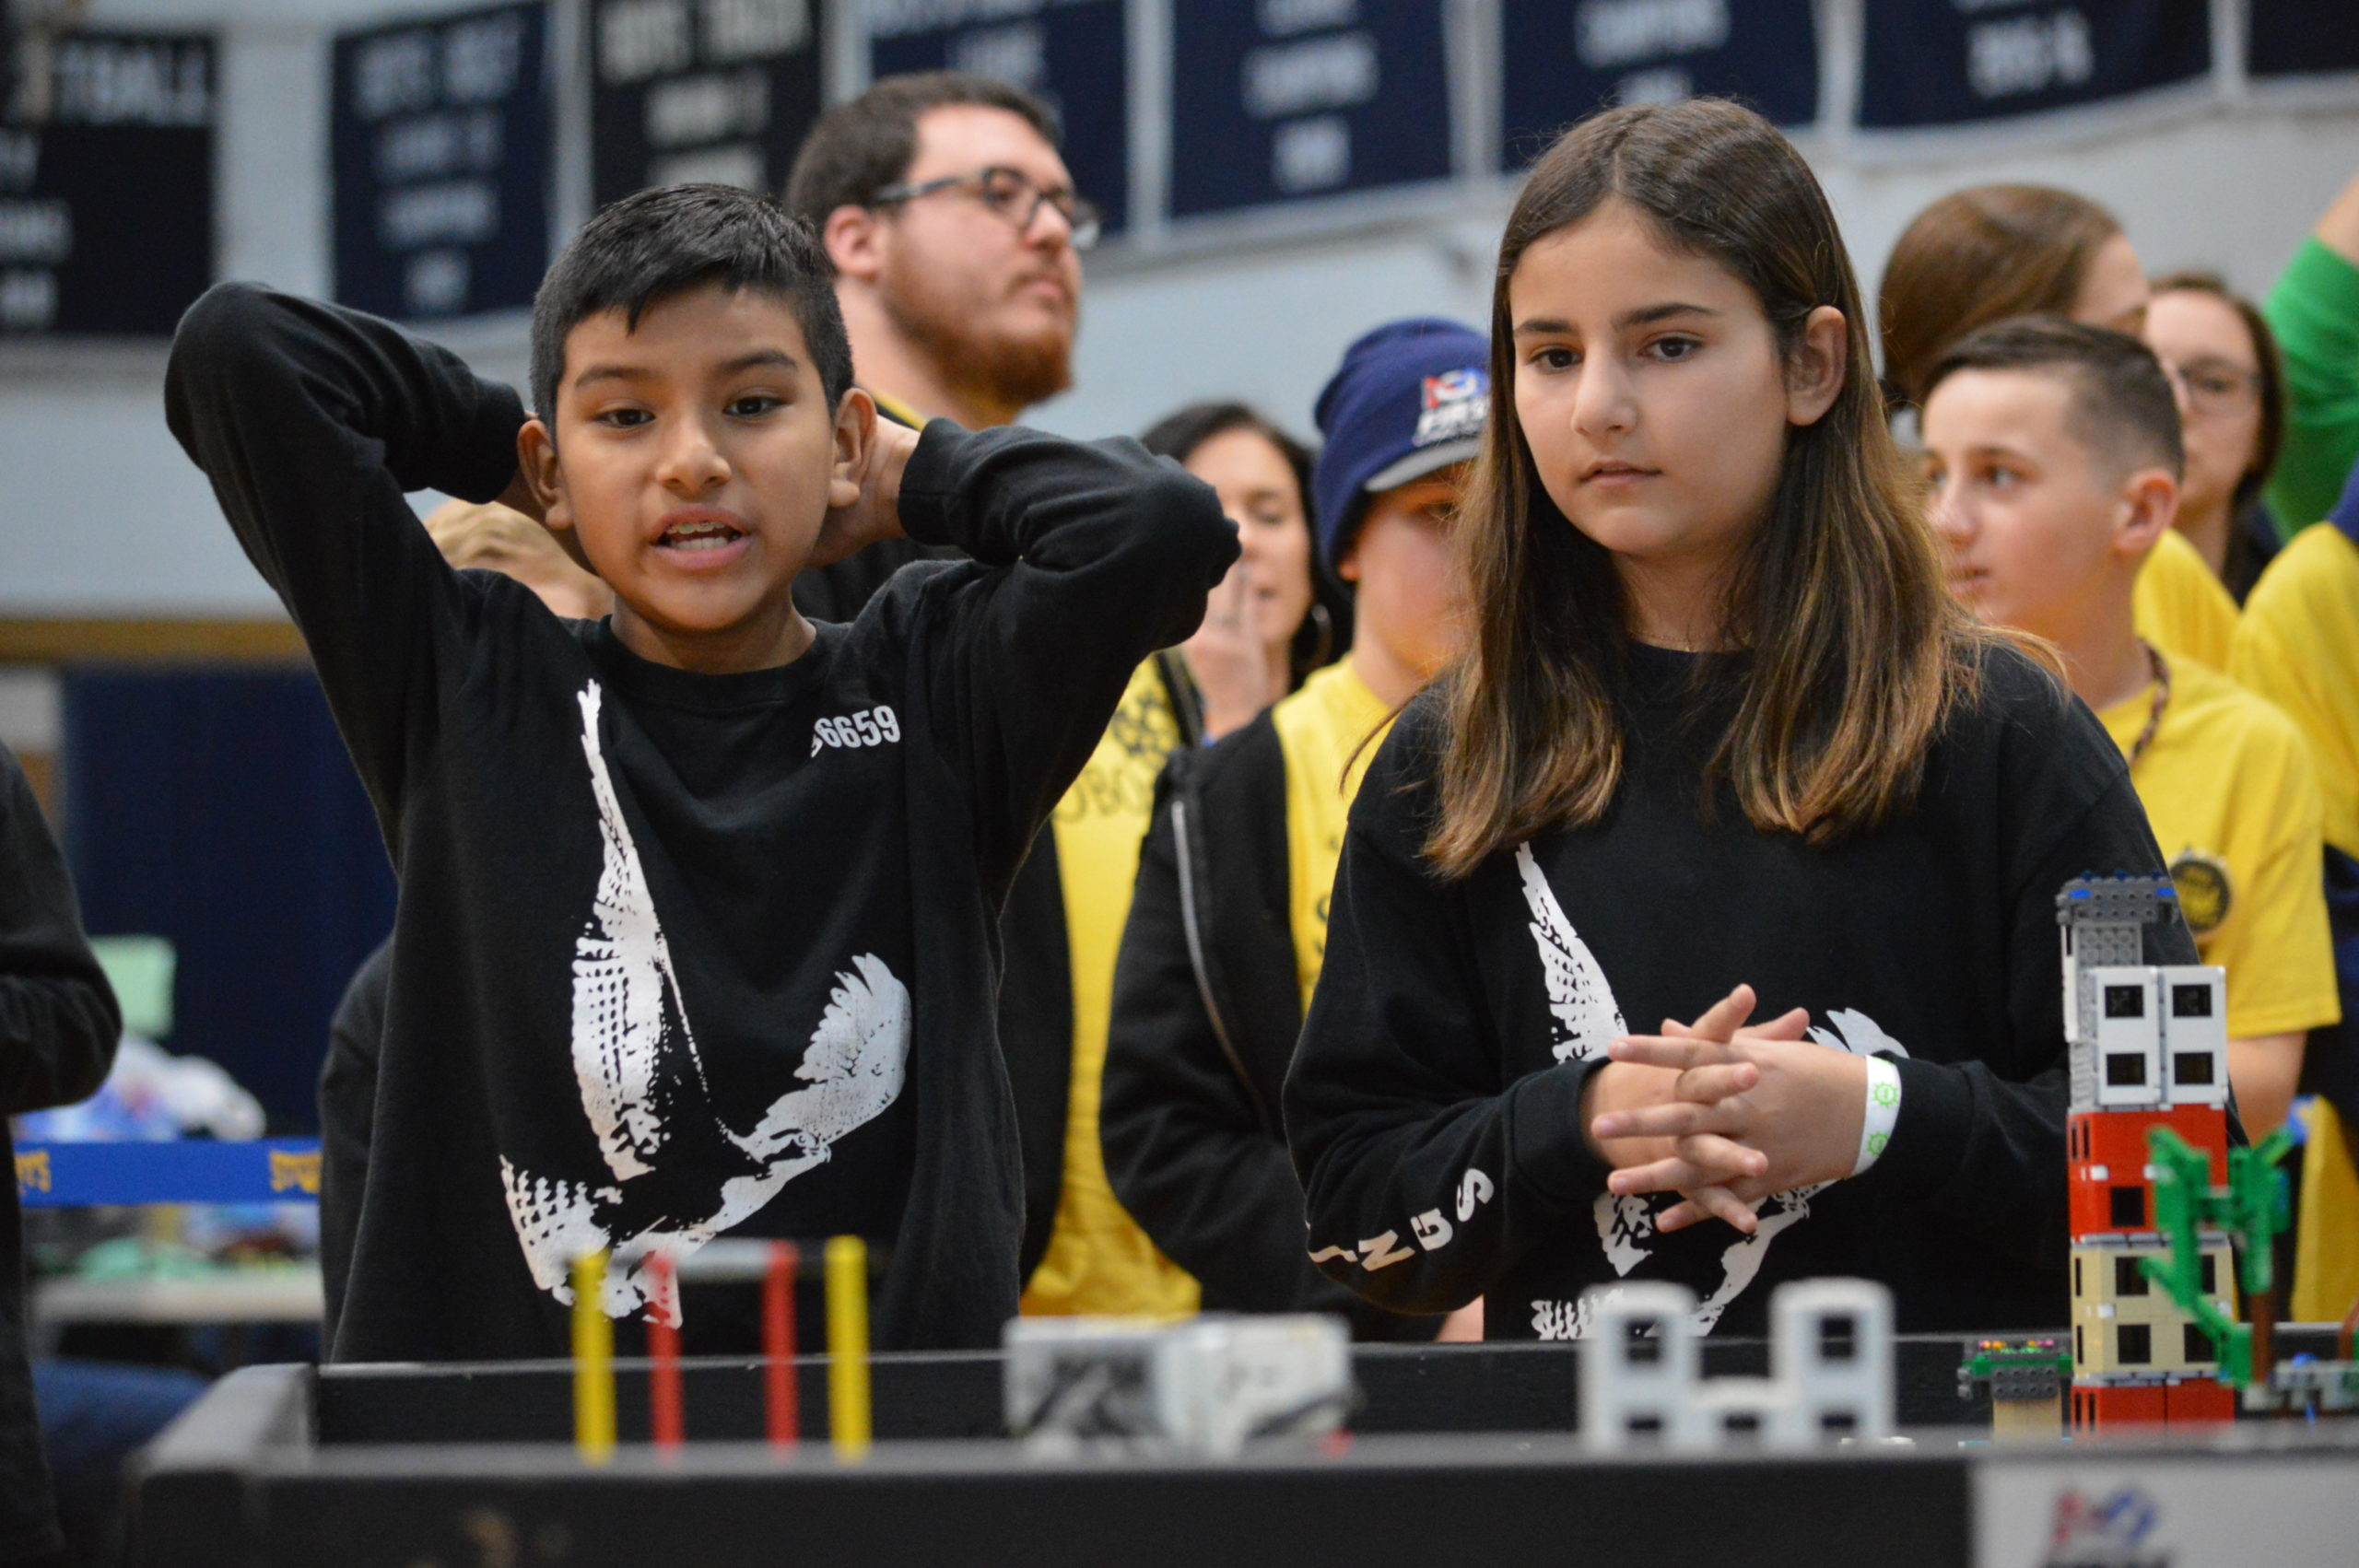 Three teams from Springs School — the Springin' Ospreys, the Springs School Robonkacers and the Bionic Bonac Builders — competed Saturday at Huntington High School in one of seven qualifier rounds of the Long Island FIRST LEGO League Tournament season. While none of the teams, comprising students in fifth, sixth and seventh grades, advanced to the Long Island final, the teams all placed in the top 10 of the robotics competition. Ariel Puin Mayancela, left, and Shanli Yaghoubi compete for the Springin' Ospreys at Huntington High School on Saturday. GAVIN MENU